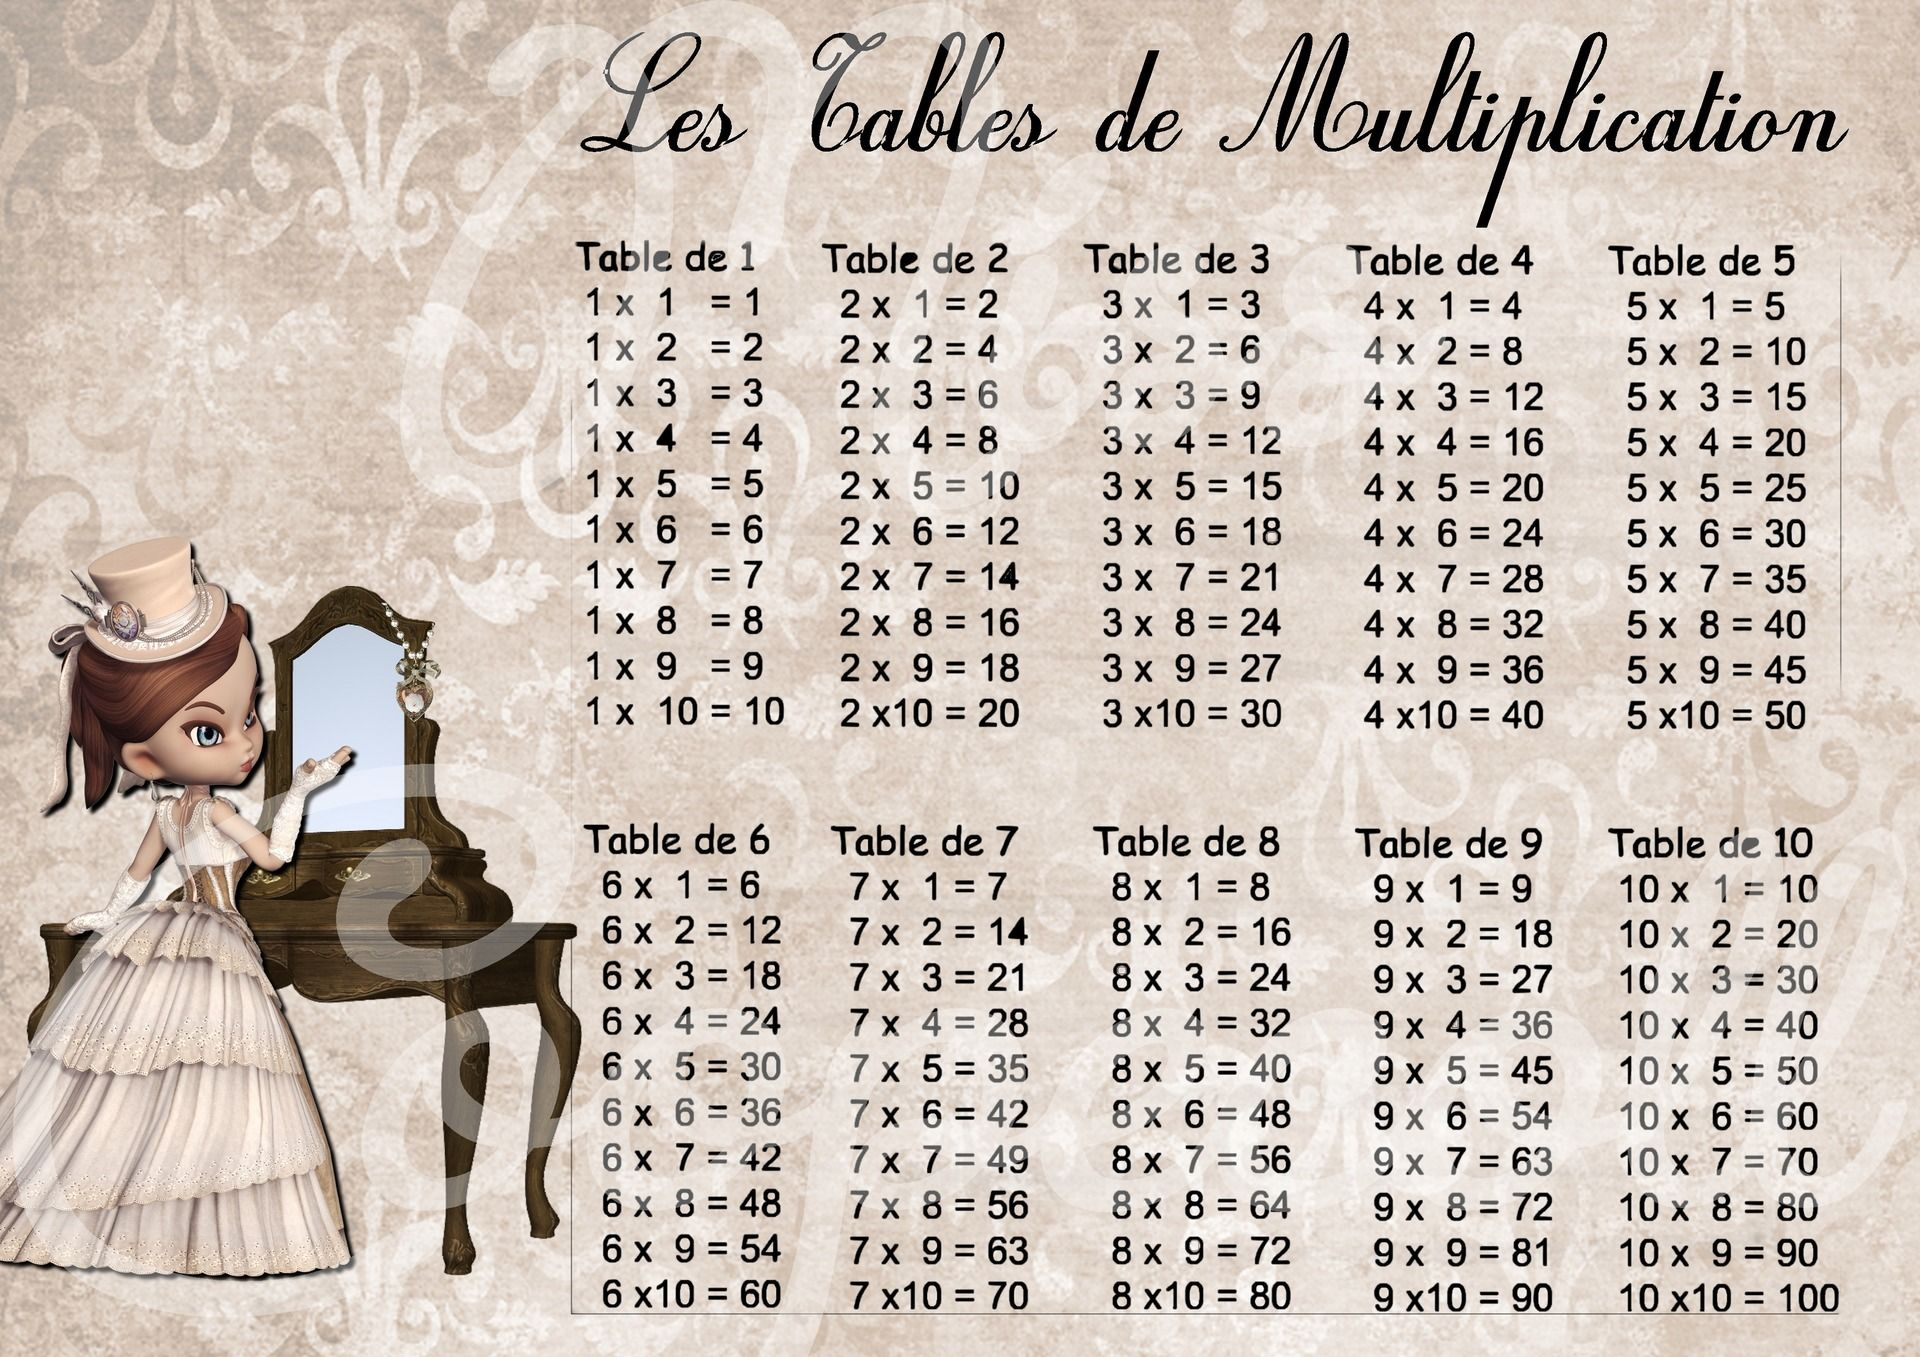 Table de multiplication plastifi e format a4 miss - Table de multiplication de 1 a 10 a imprimer ...